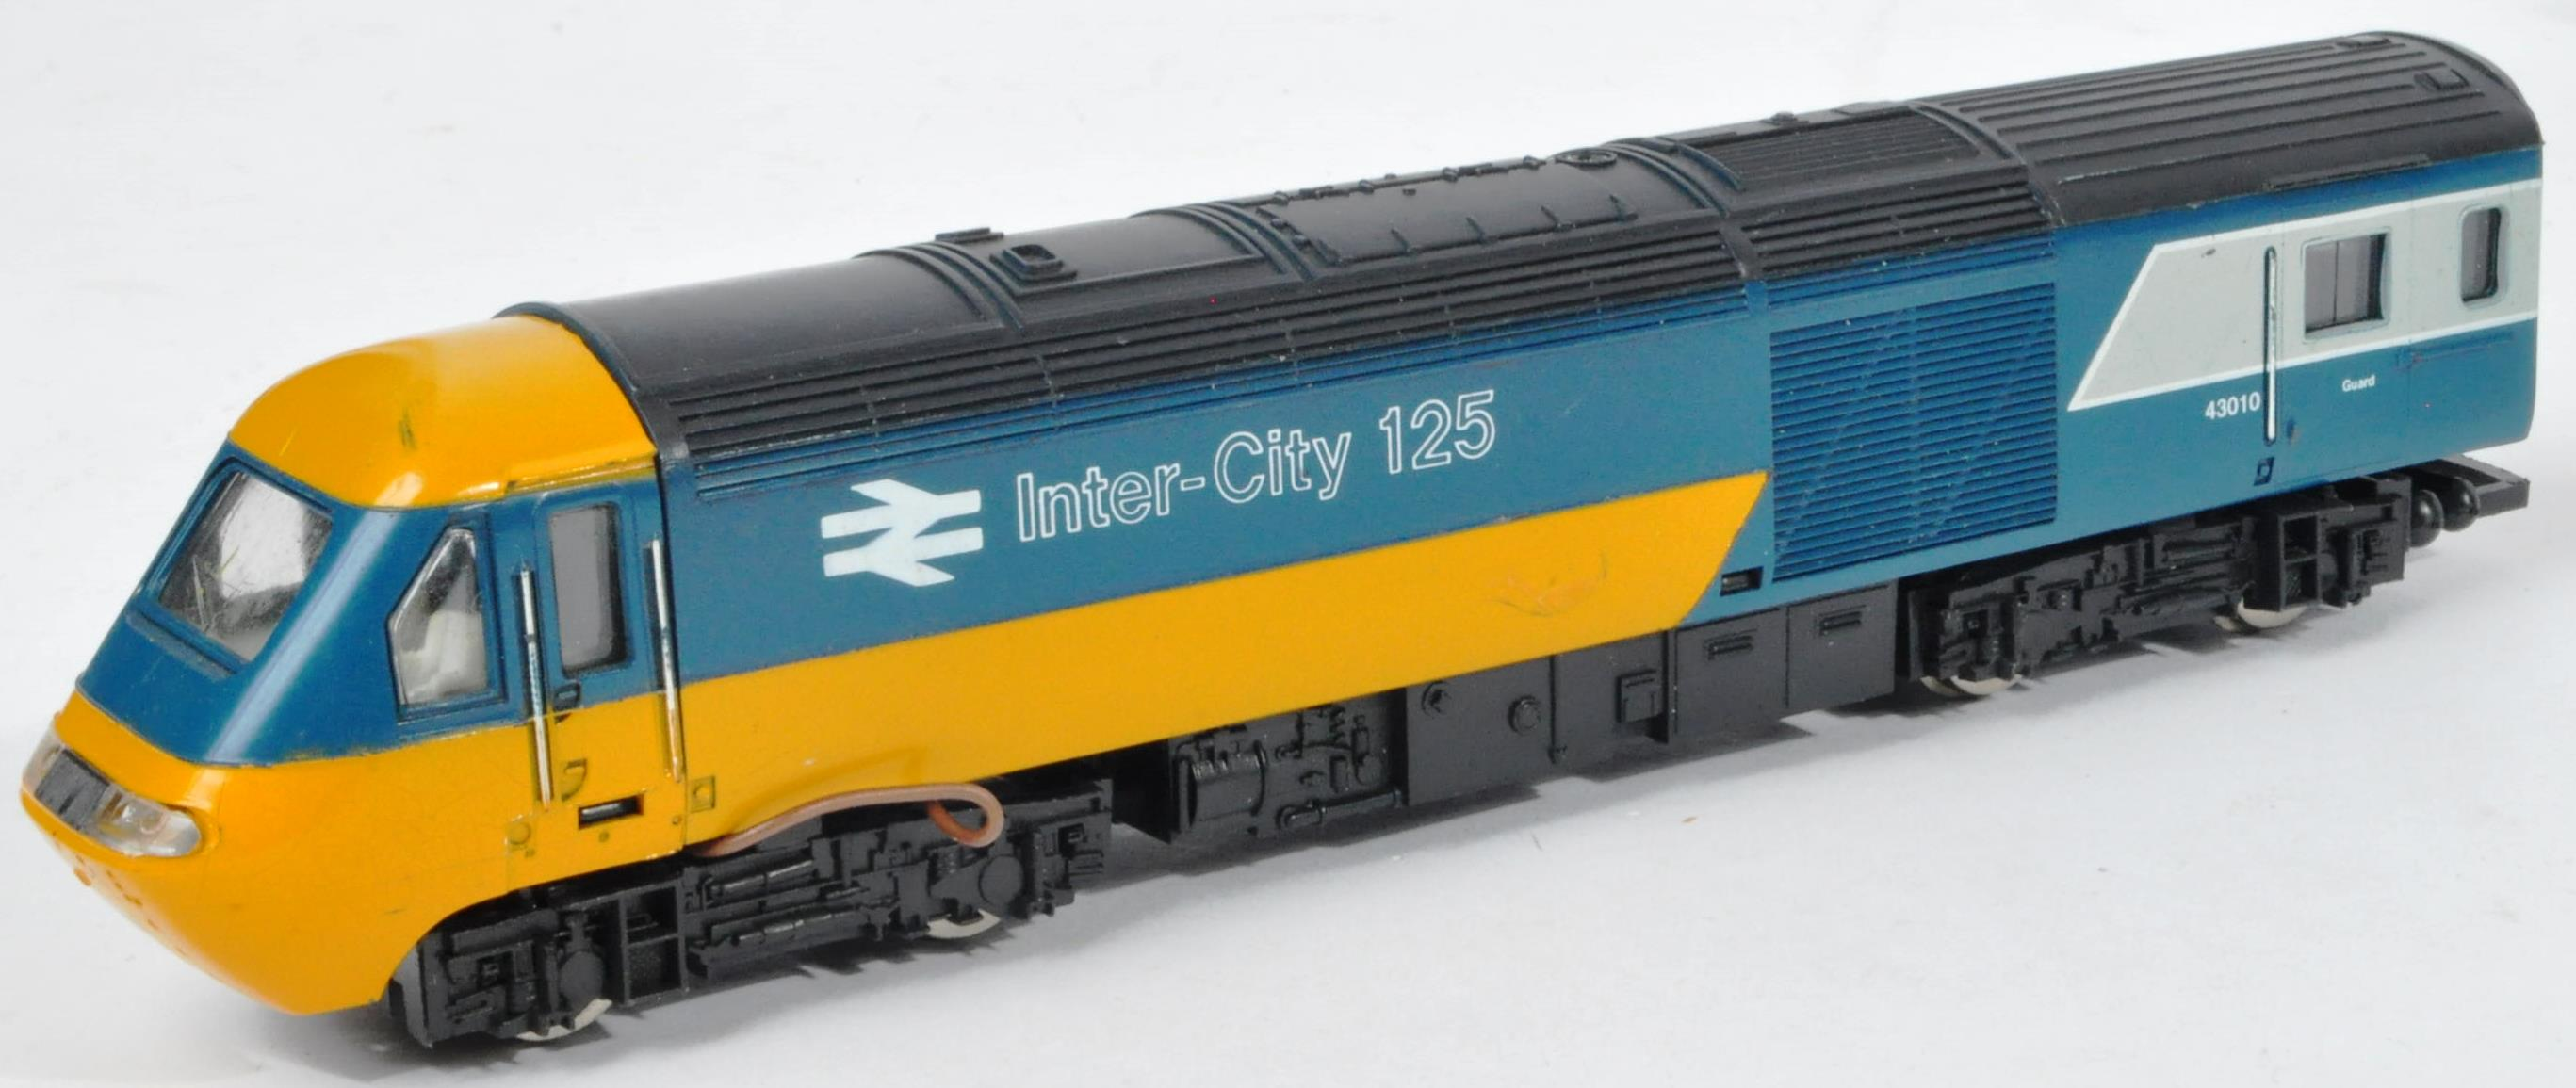 COLLECTION OF ASSORTED DIESEL 00 GAUGE TRAINSET LOCOMOTIVES & CARRIAGES - Image 5 of 10